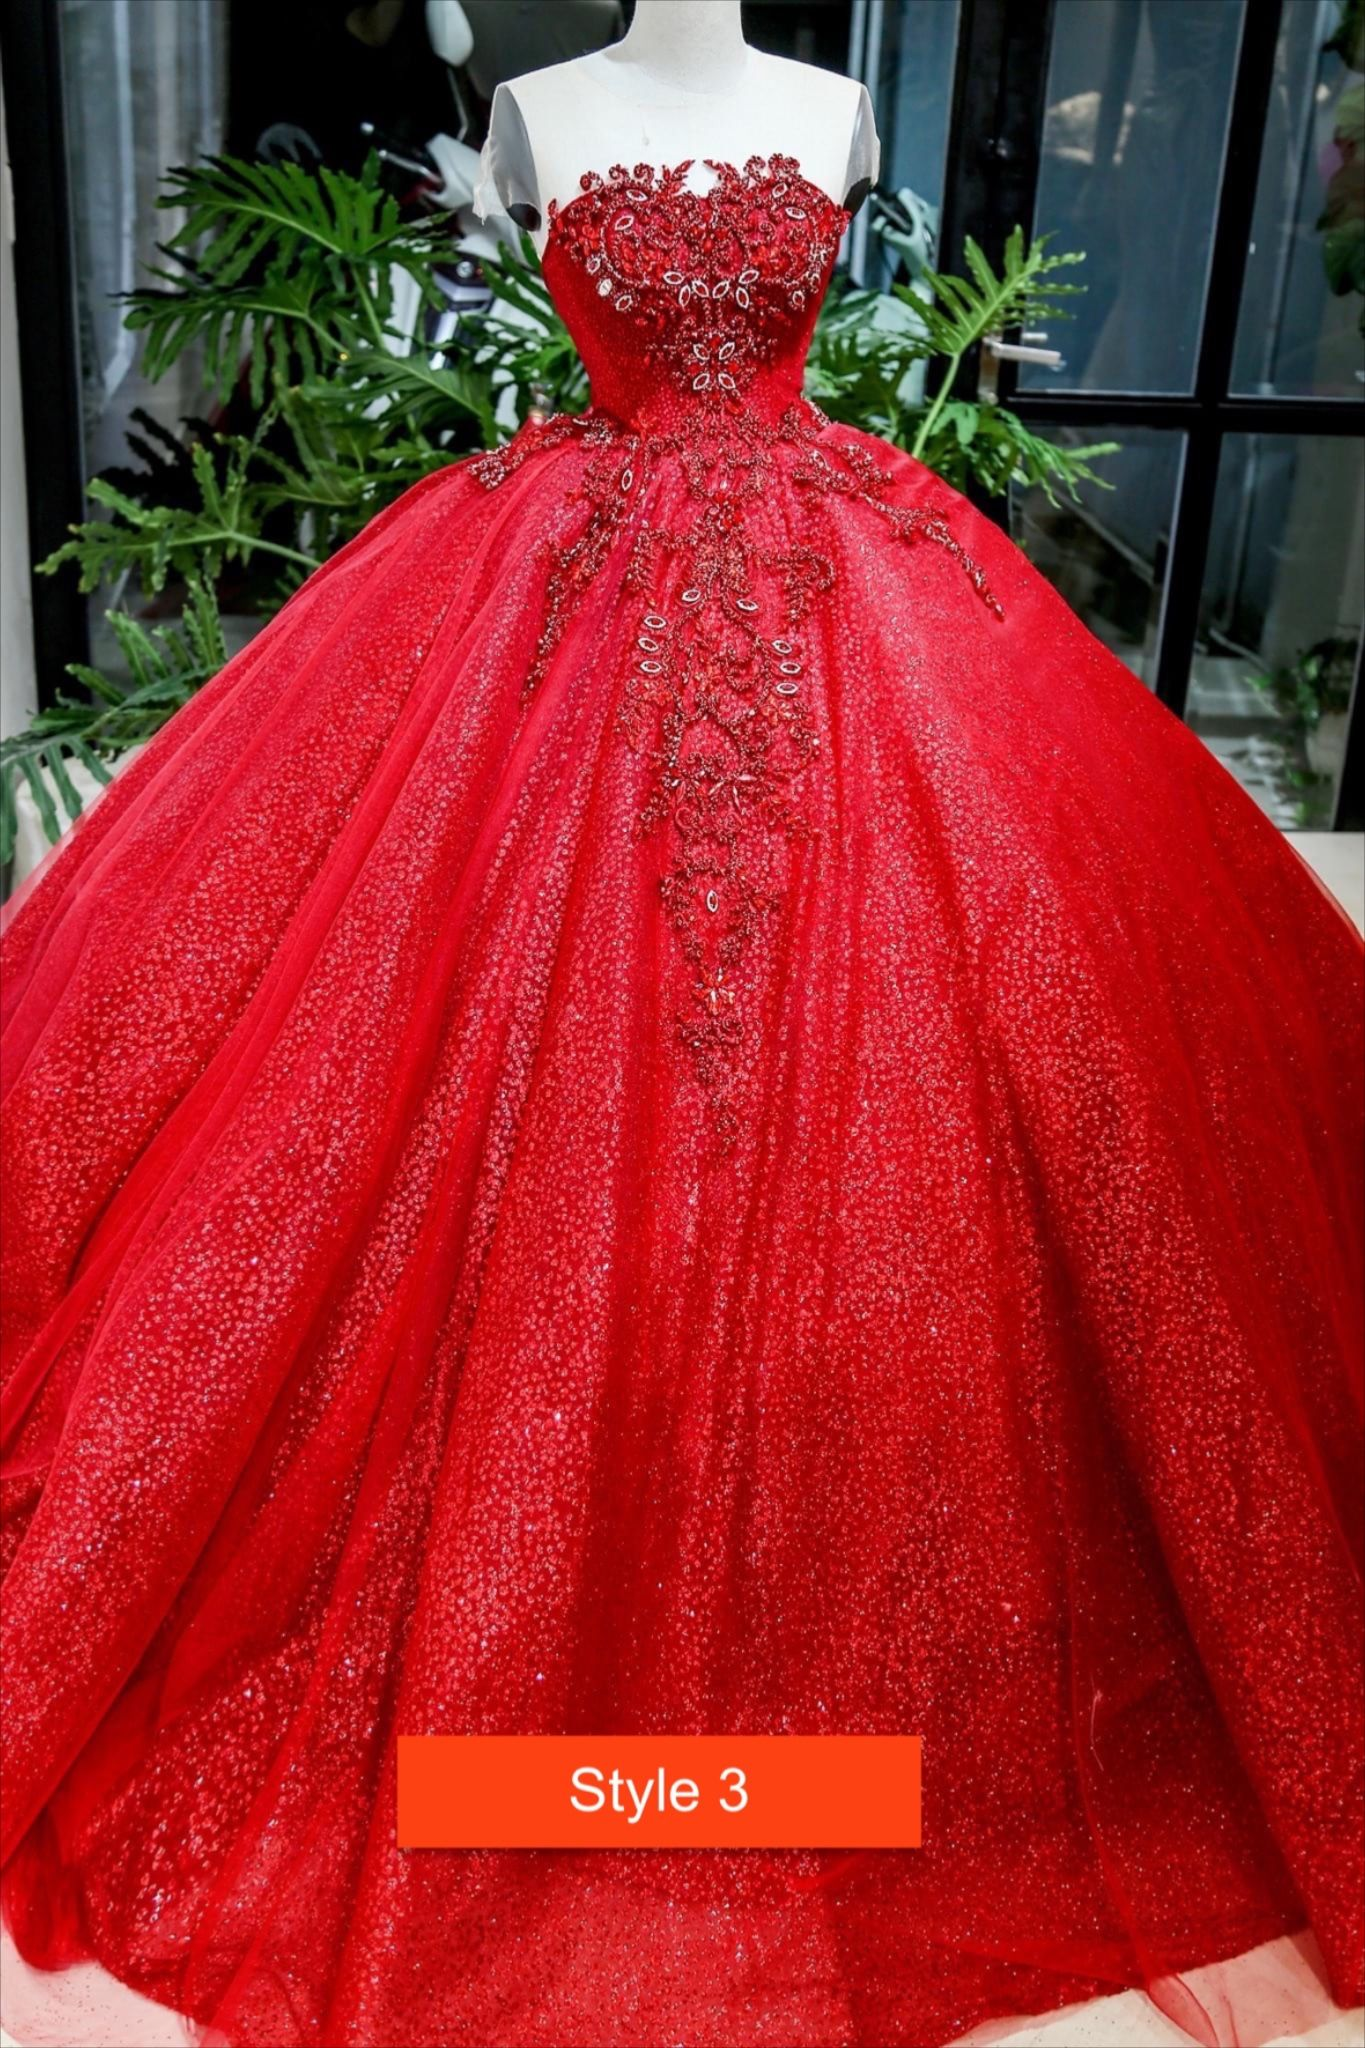 Various Styles Illusion Off The Shoulder Cap Sleeves Red Beaded Sparkle Ball Gown Wedding Dress With Glitter Tulle Ball Gowns Ball Gown Wedding Dress Red Ball Gowns [ 2048 x 1365 Pixel ]